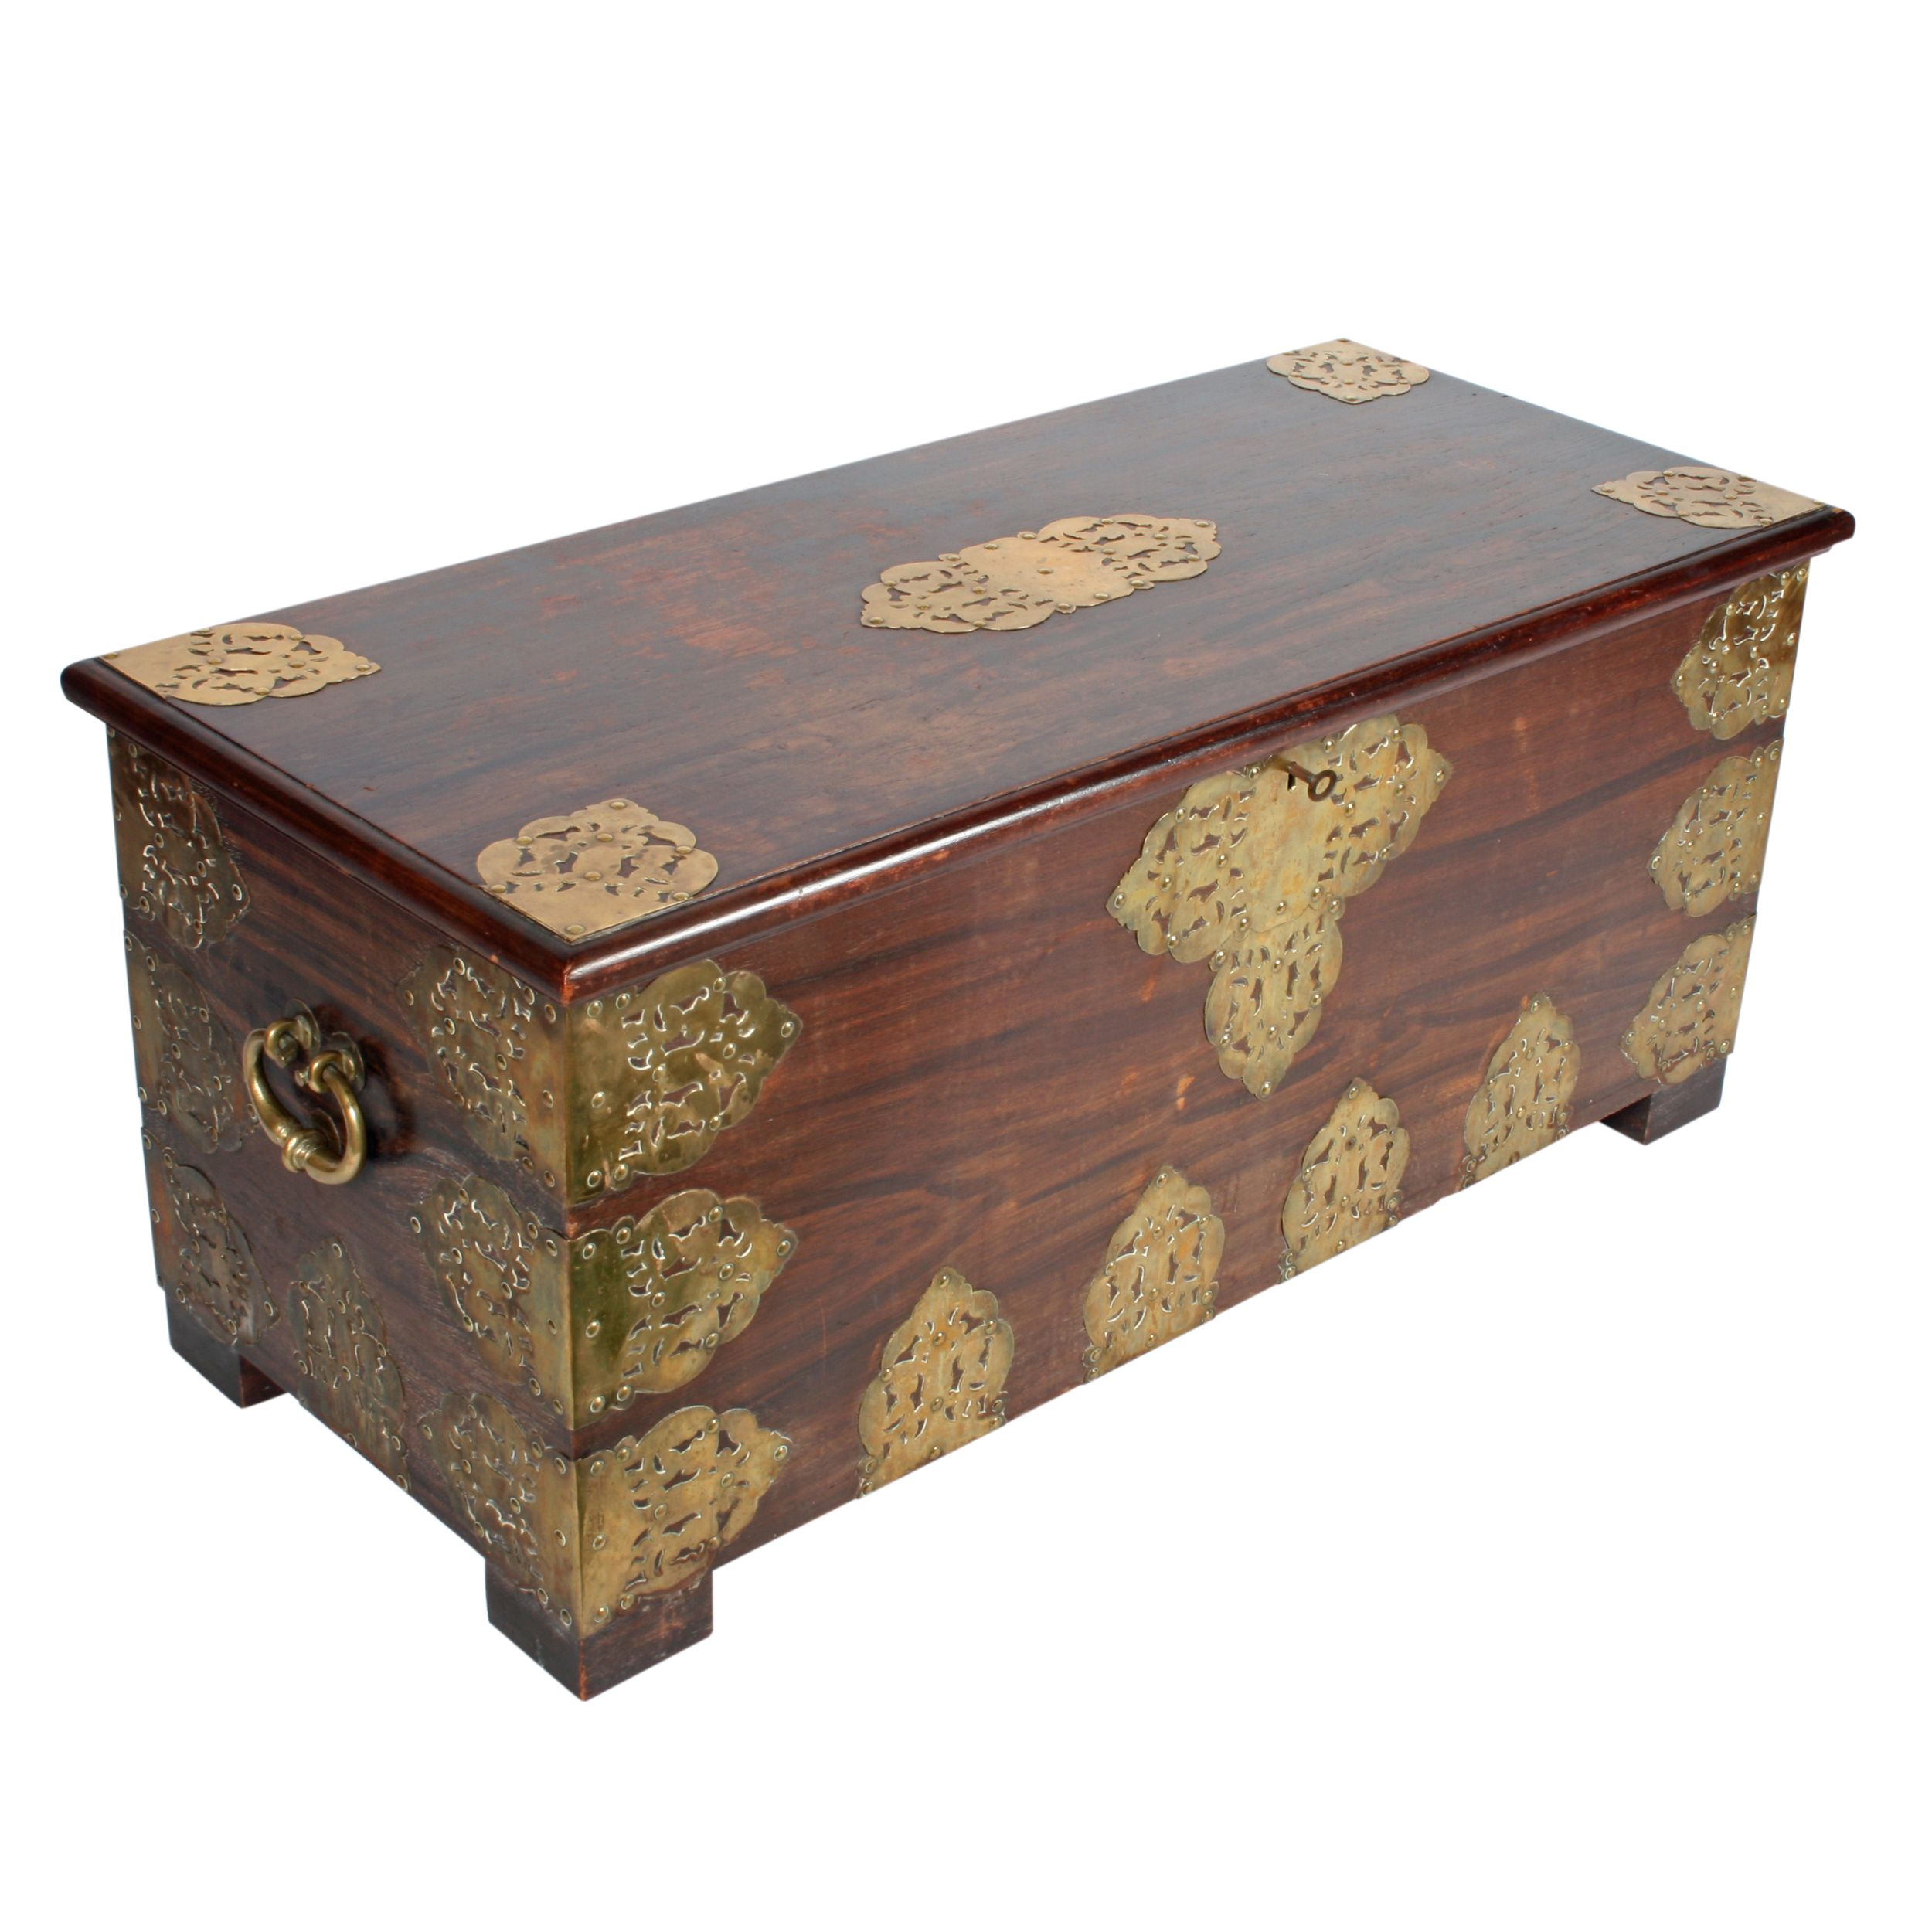 Restored All Wood Dome Top Antique Trunk For Sale 713 Antique Trunk Antique Steamer Trunk Trunks For Sale